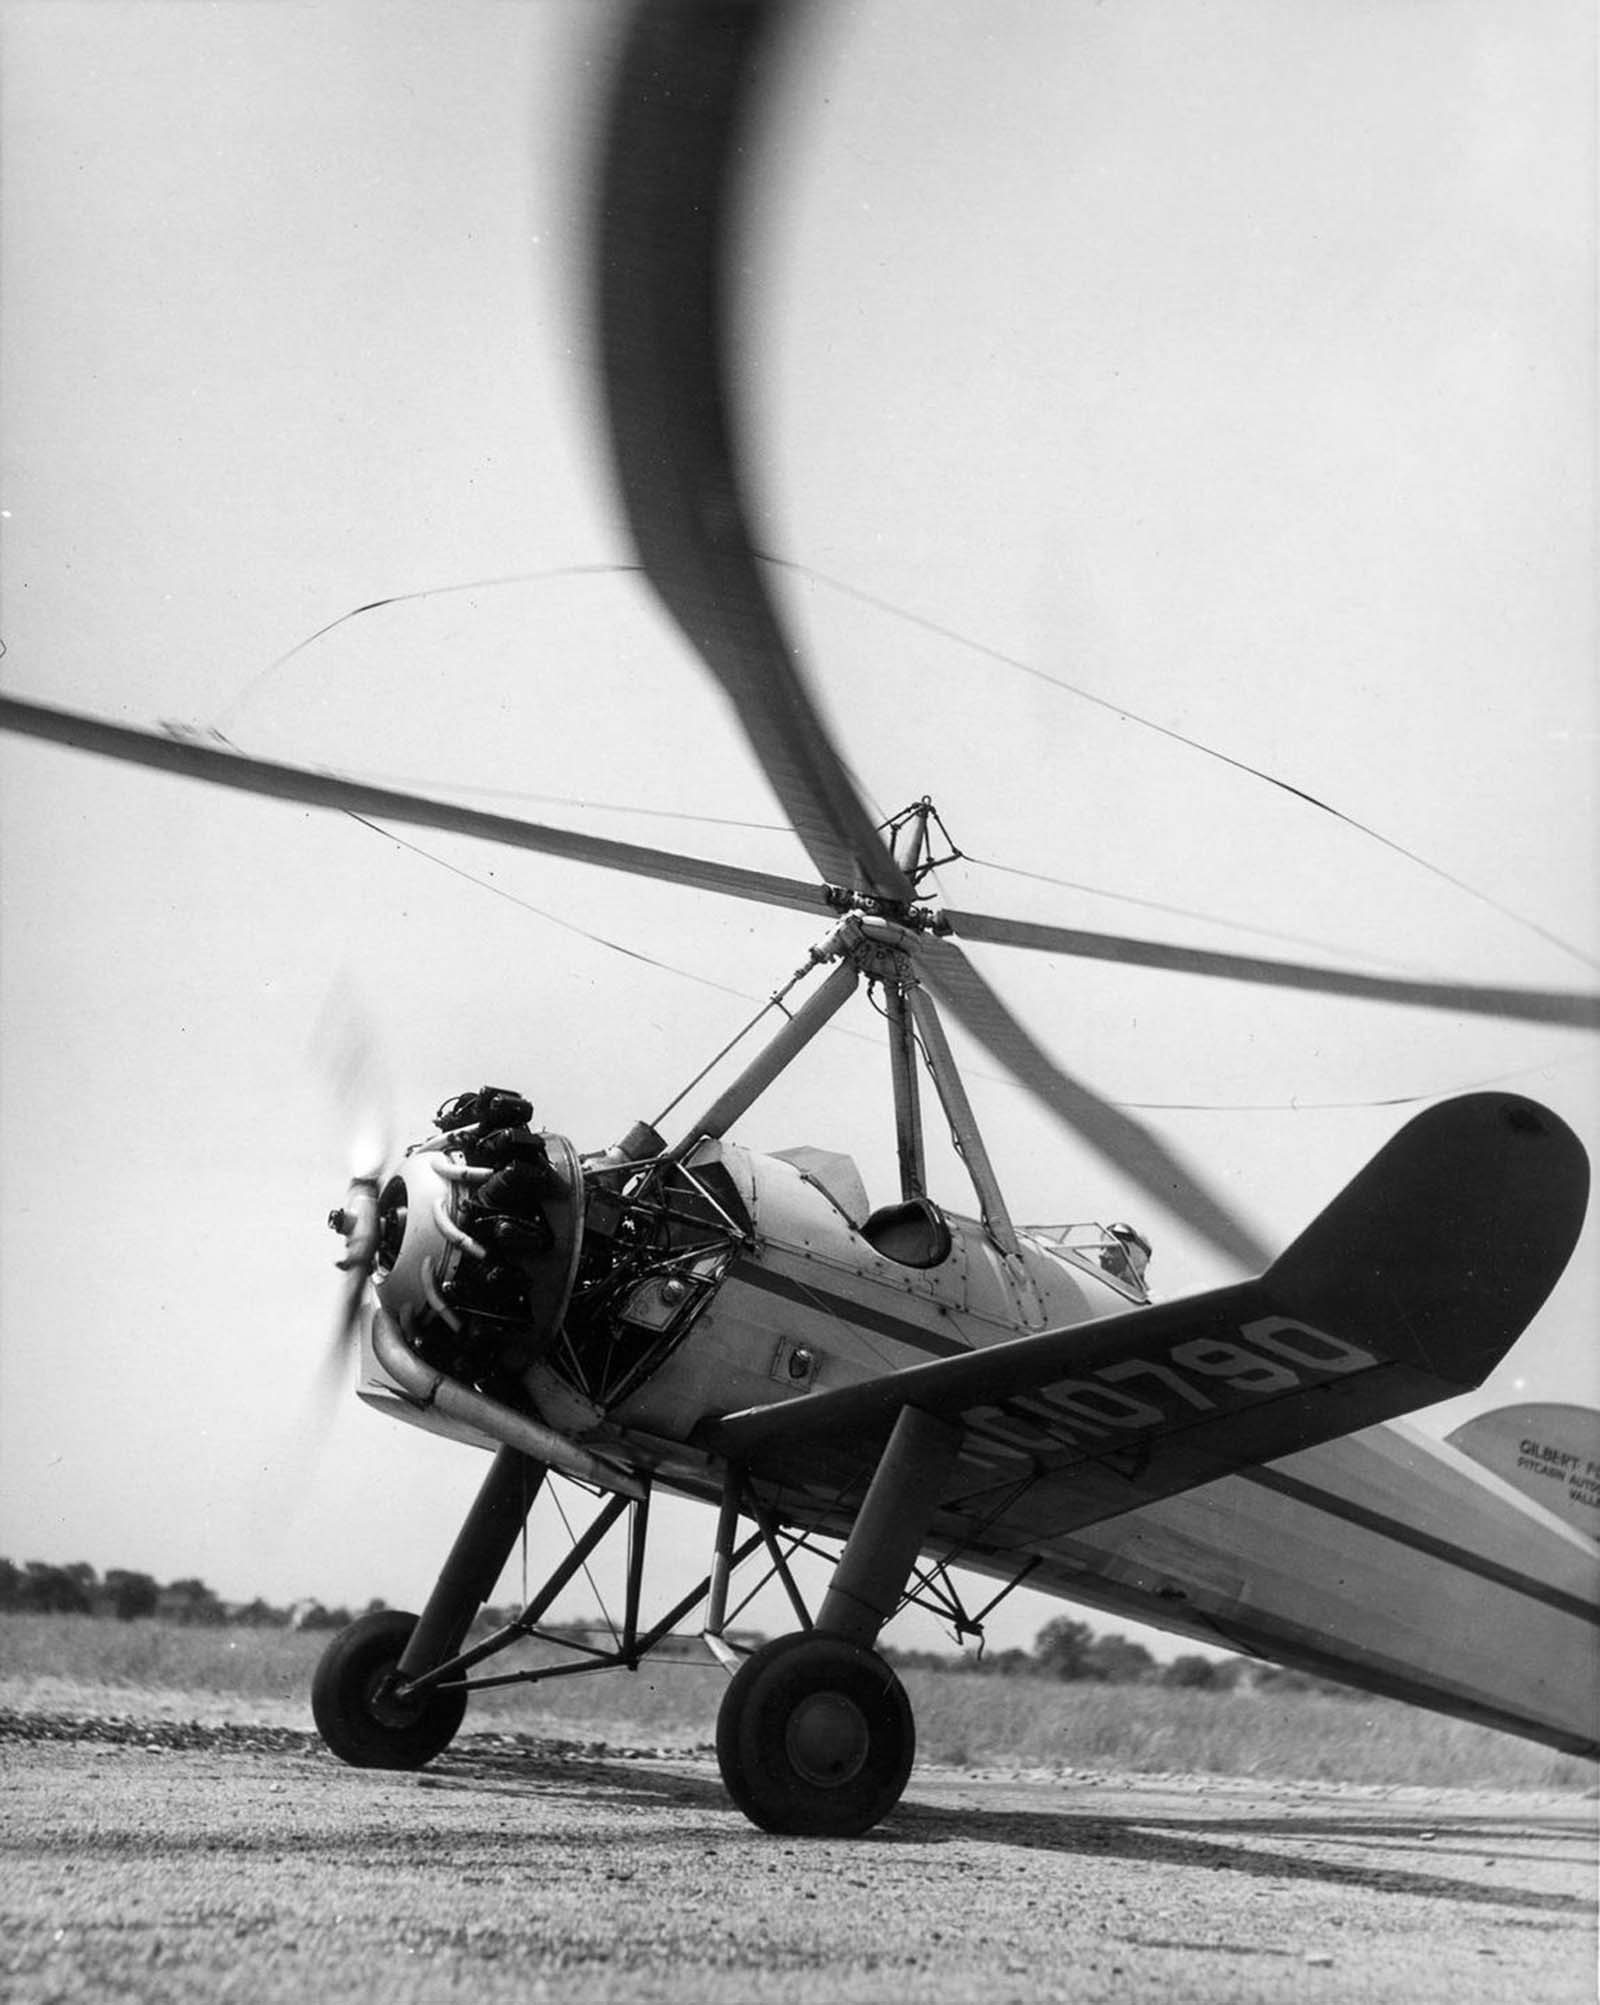 An autogyro pilot prepares for takeoff in New York. 1930.